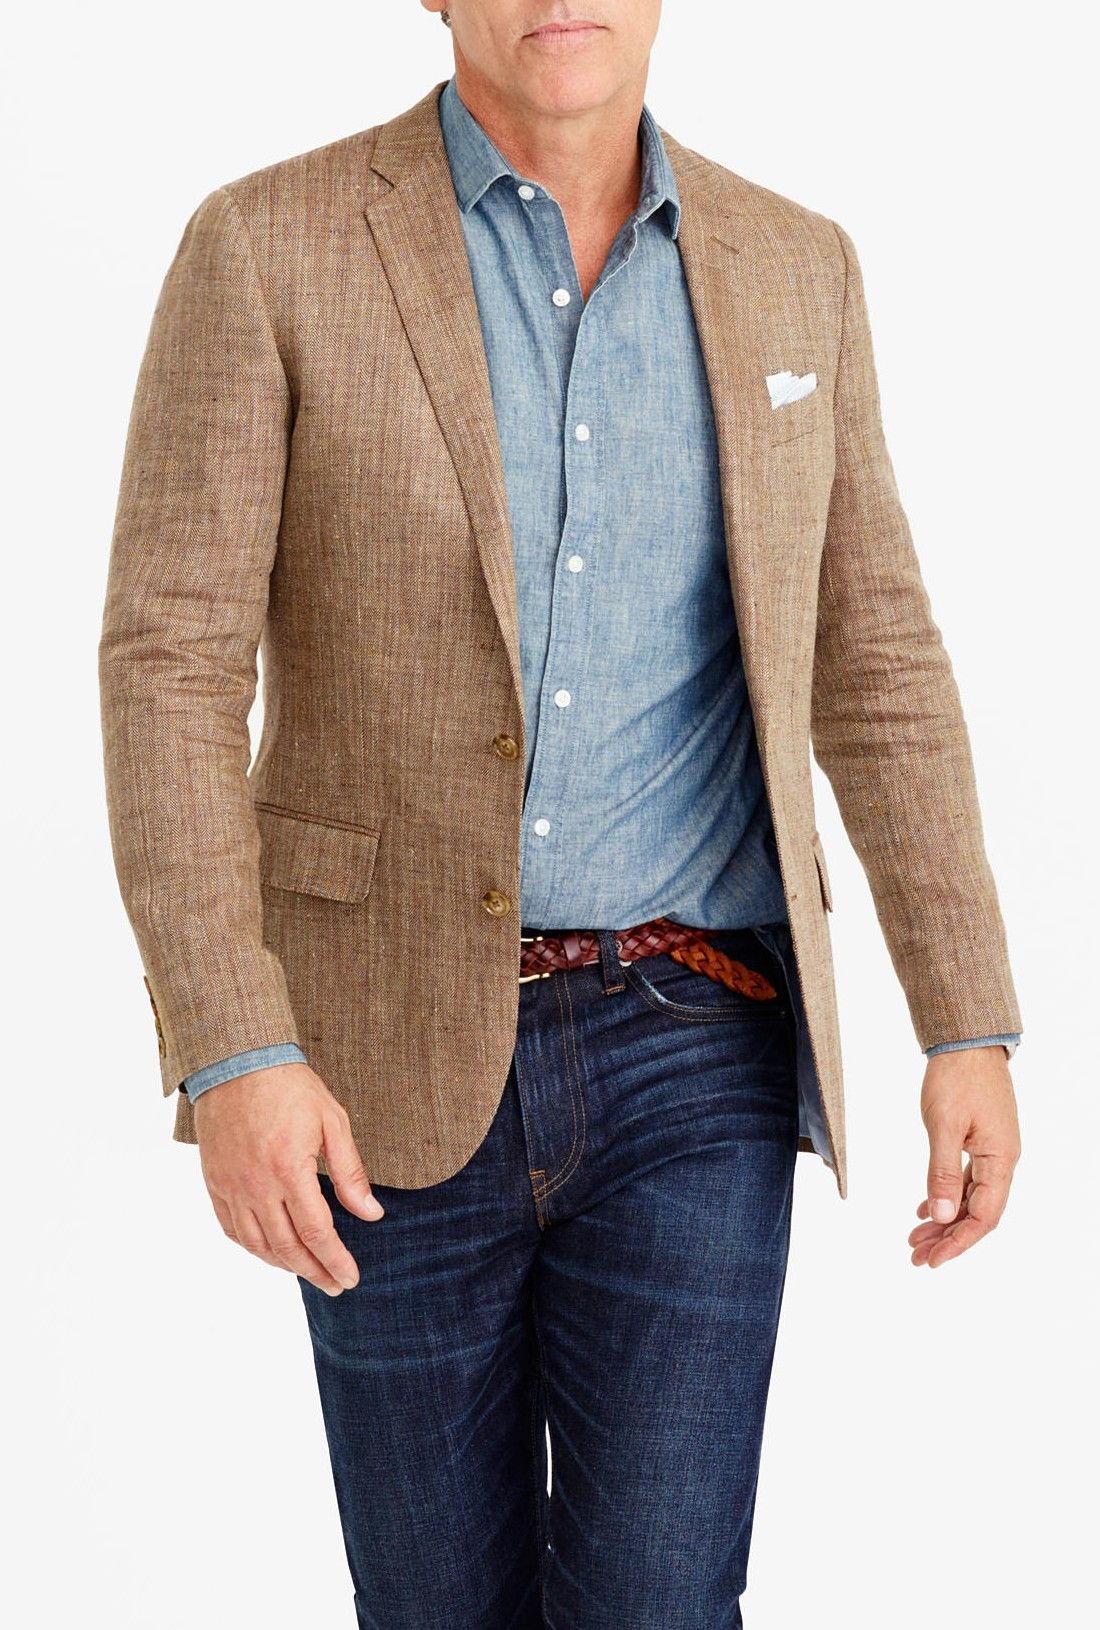 Best Mens Blazers for Spring 2016 Top Slim Fit Sports